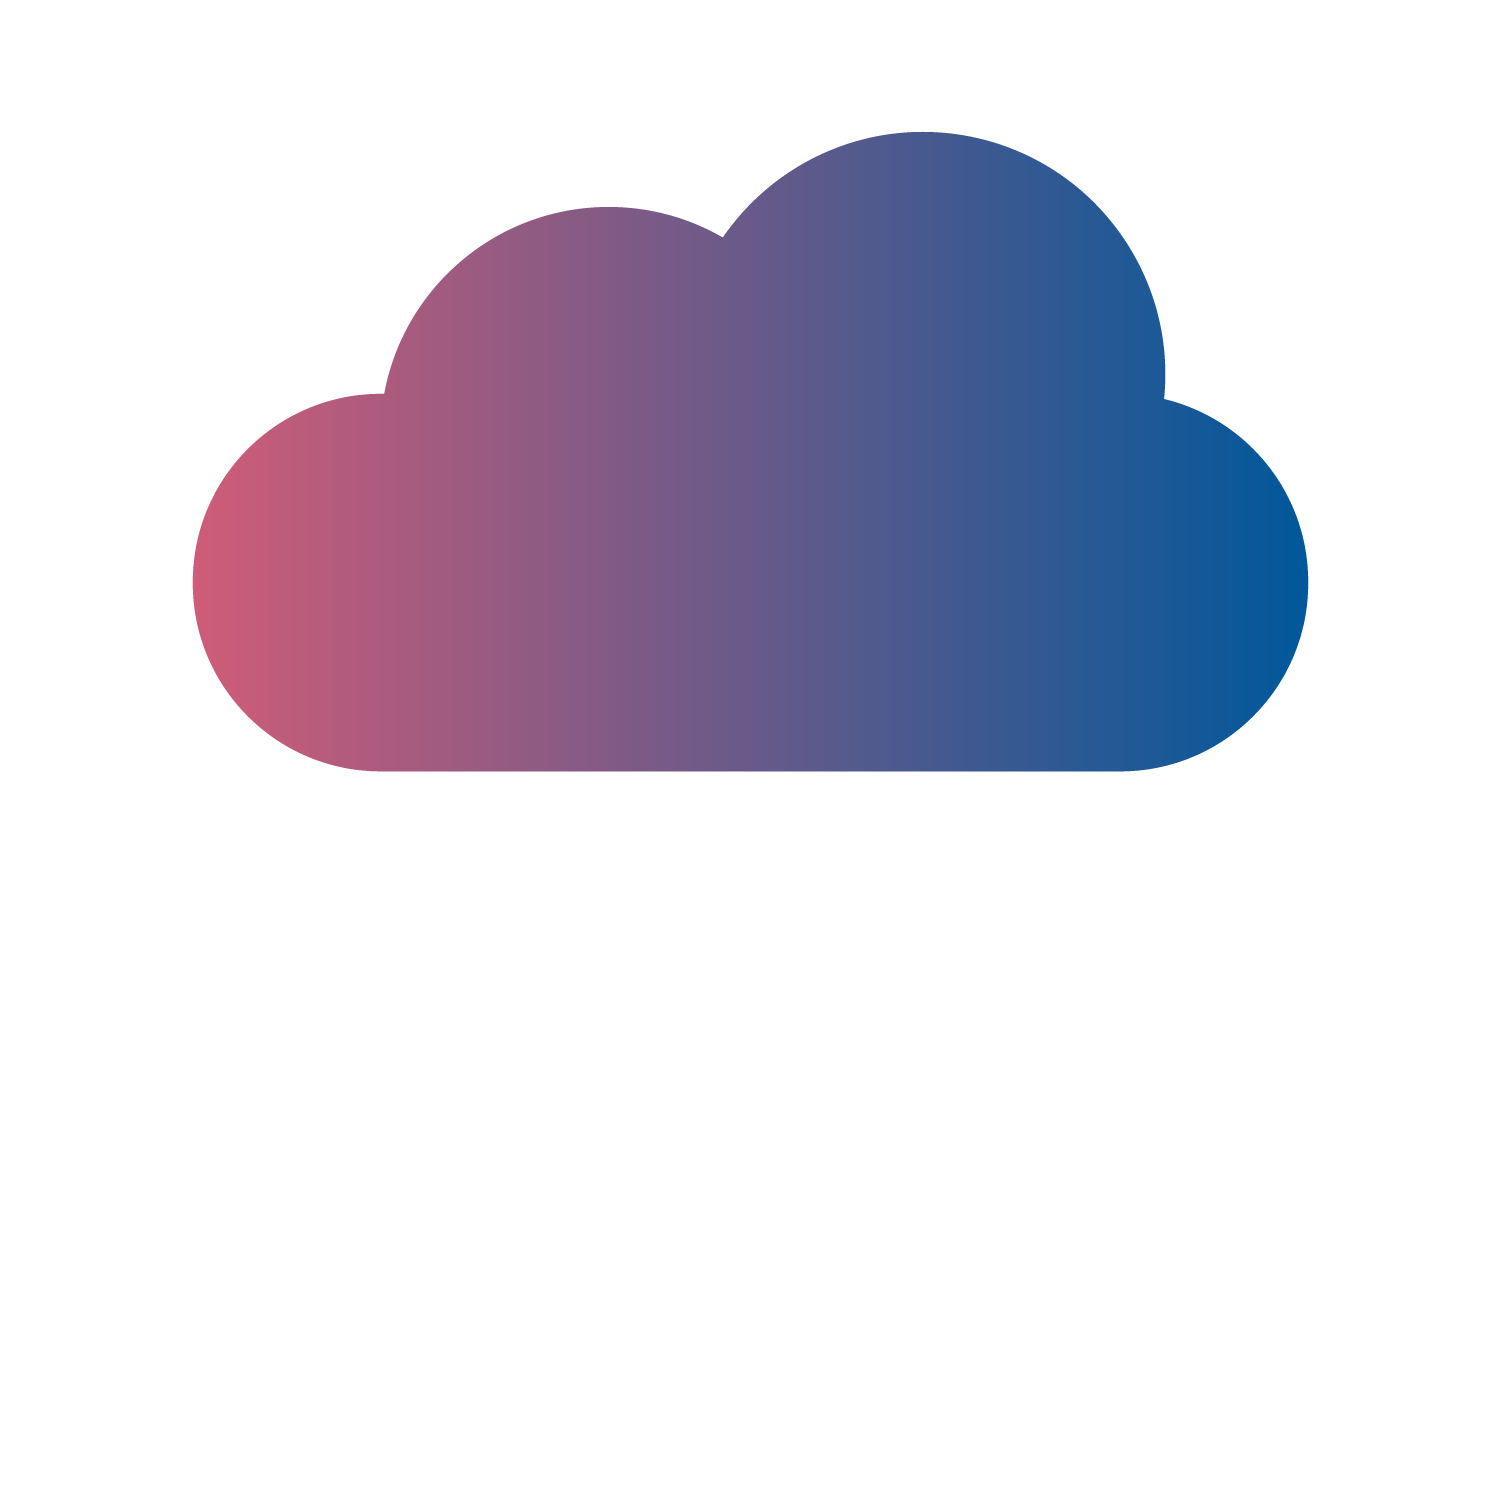 Startup on the cloud 2.0